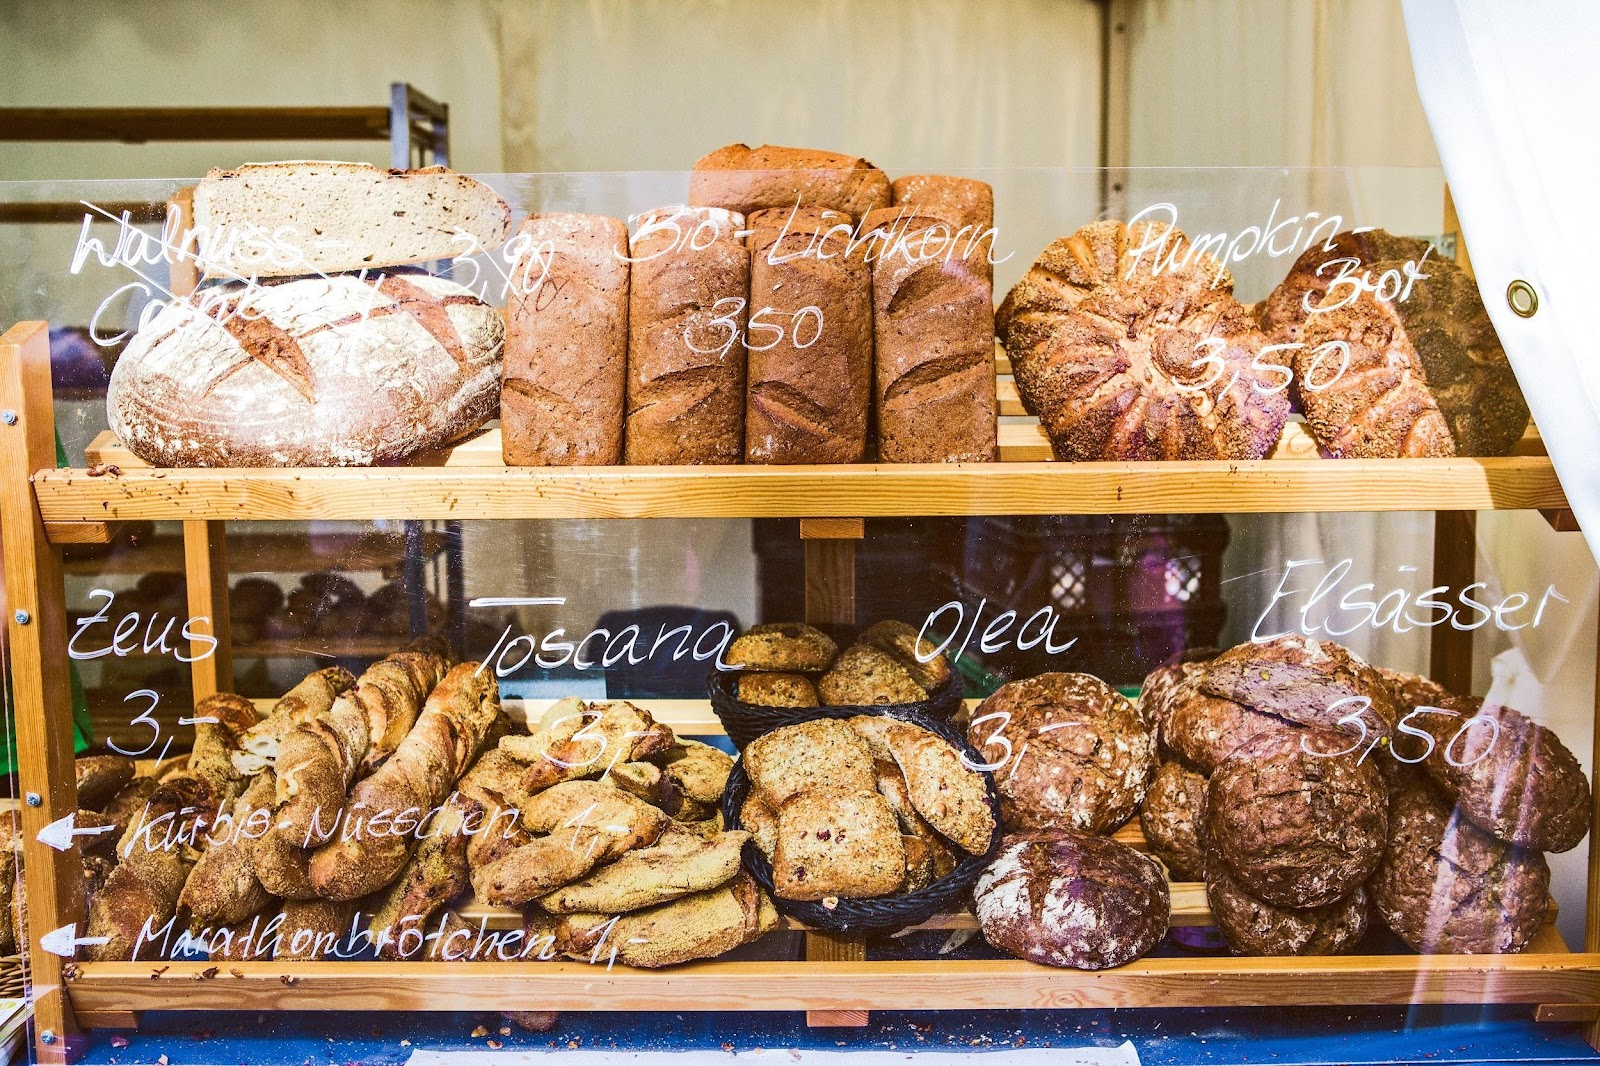 startup bakery displaying baked goods